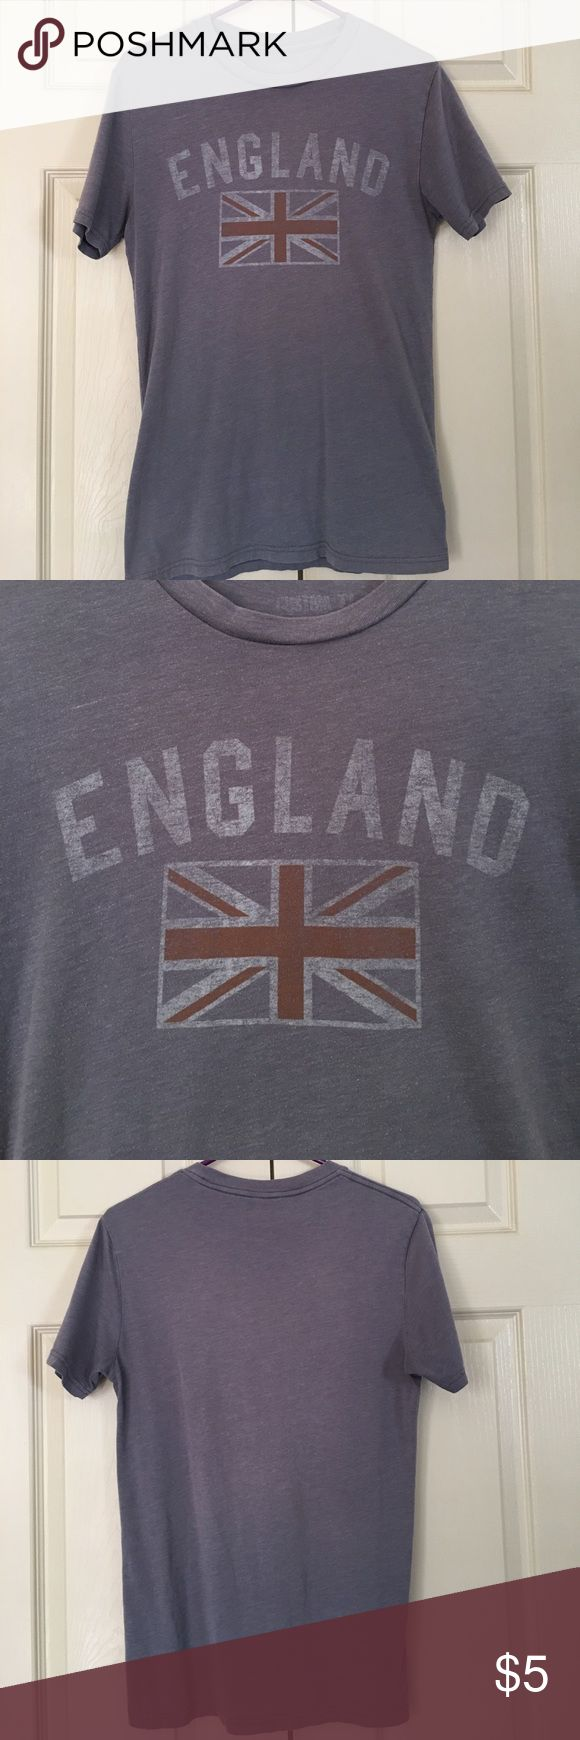 ❤️England Shirt!❤️ Selling a gently worn England shirt! Shirt came with the faded look! In great condition! Does have piling from being washed often. No holes or stains! Shirts Tees - Short Sleeve